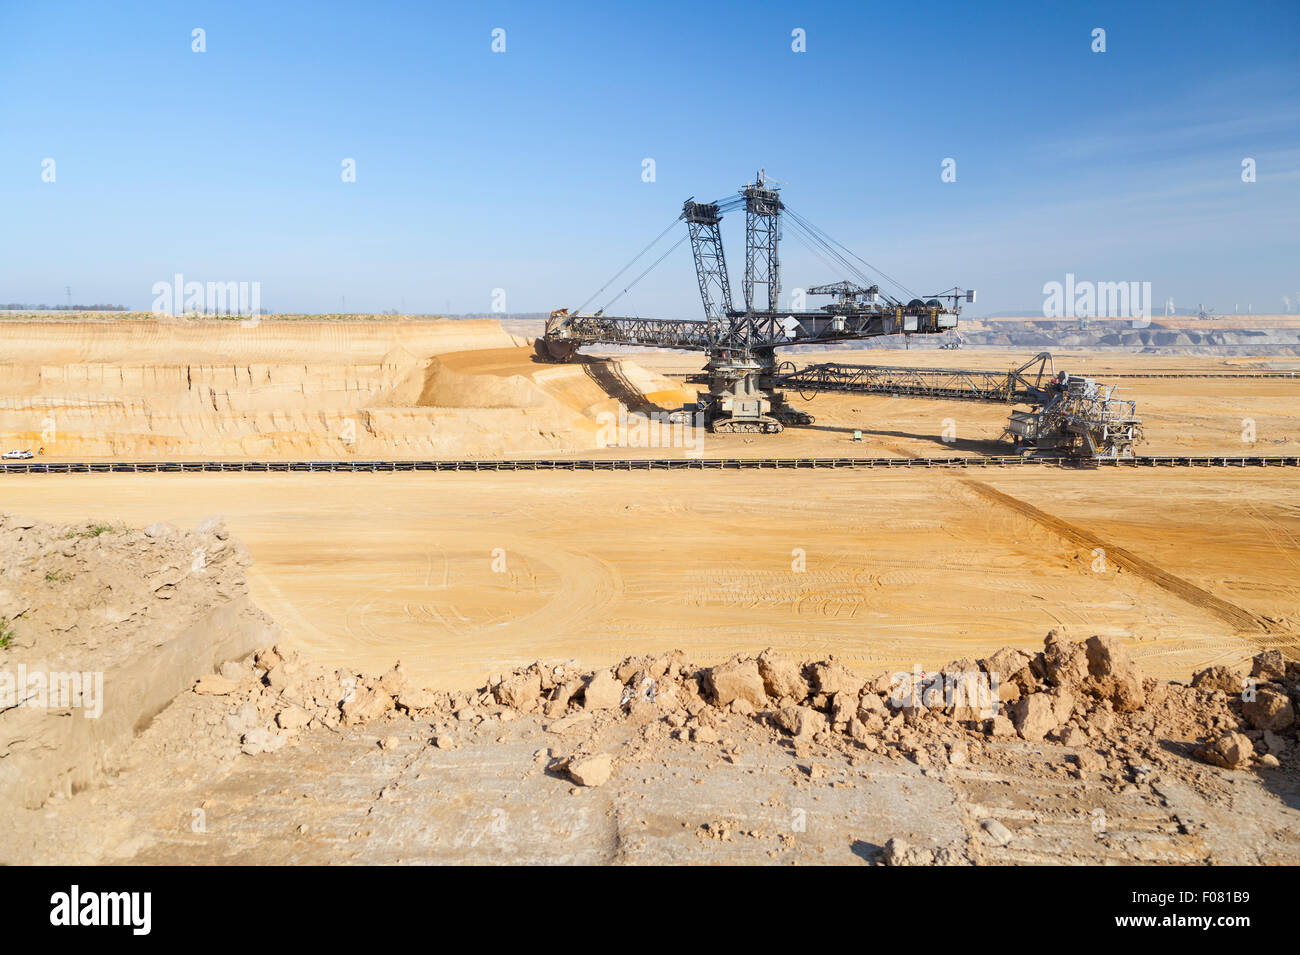 A giant Bucket Wheel Excavator at work in an endless lignite pit mine Stock Photo